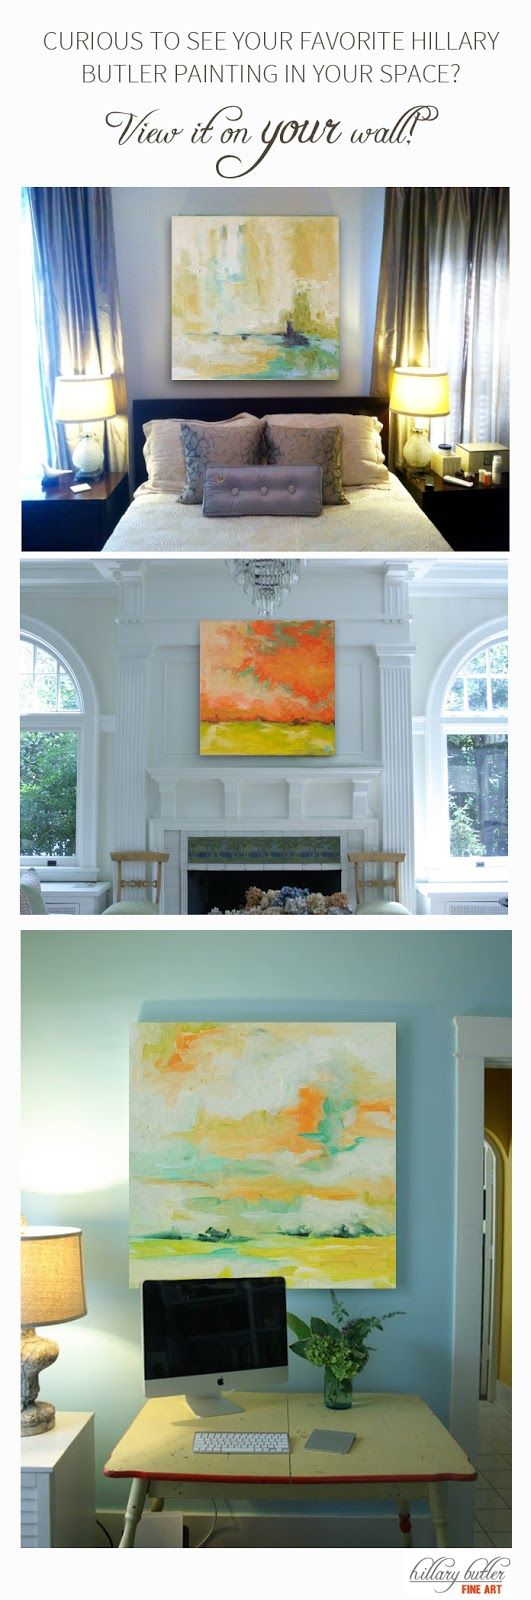 Choosing art for your home - Click Here To See Your Favorite Painting On Your Wall Take Out The Guess Work